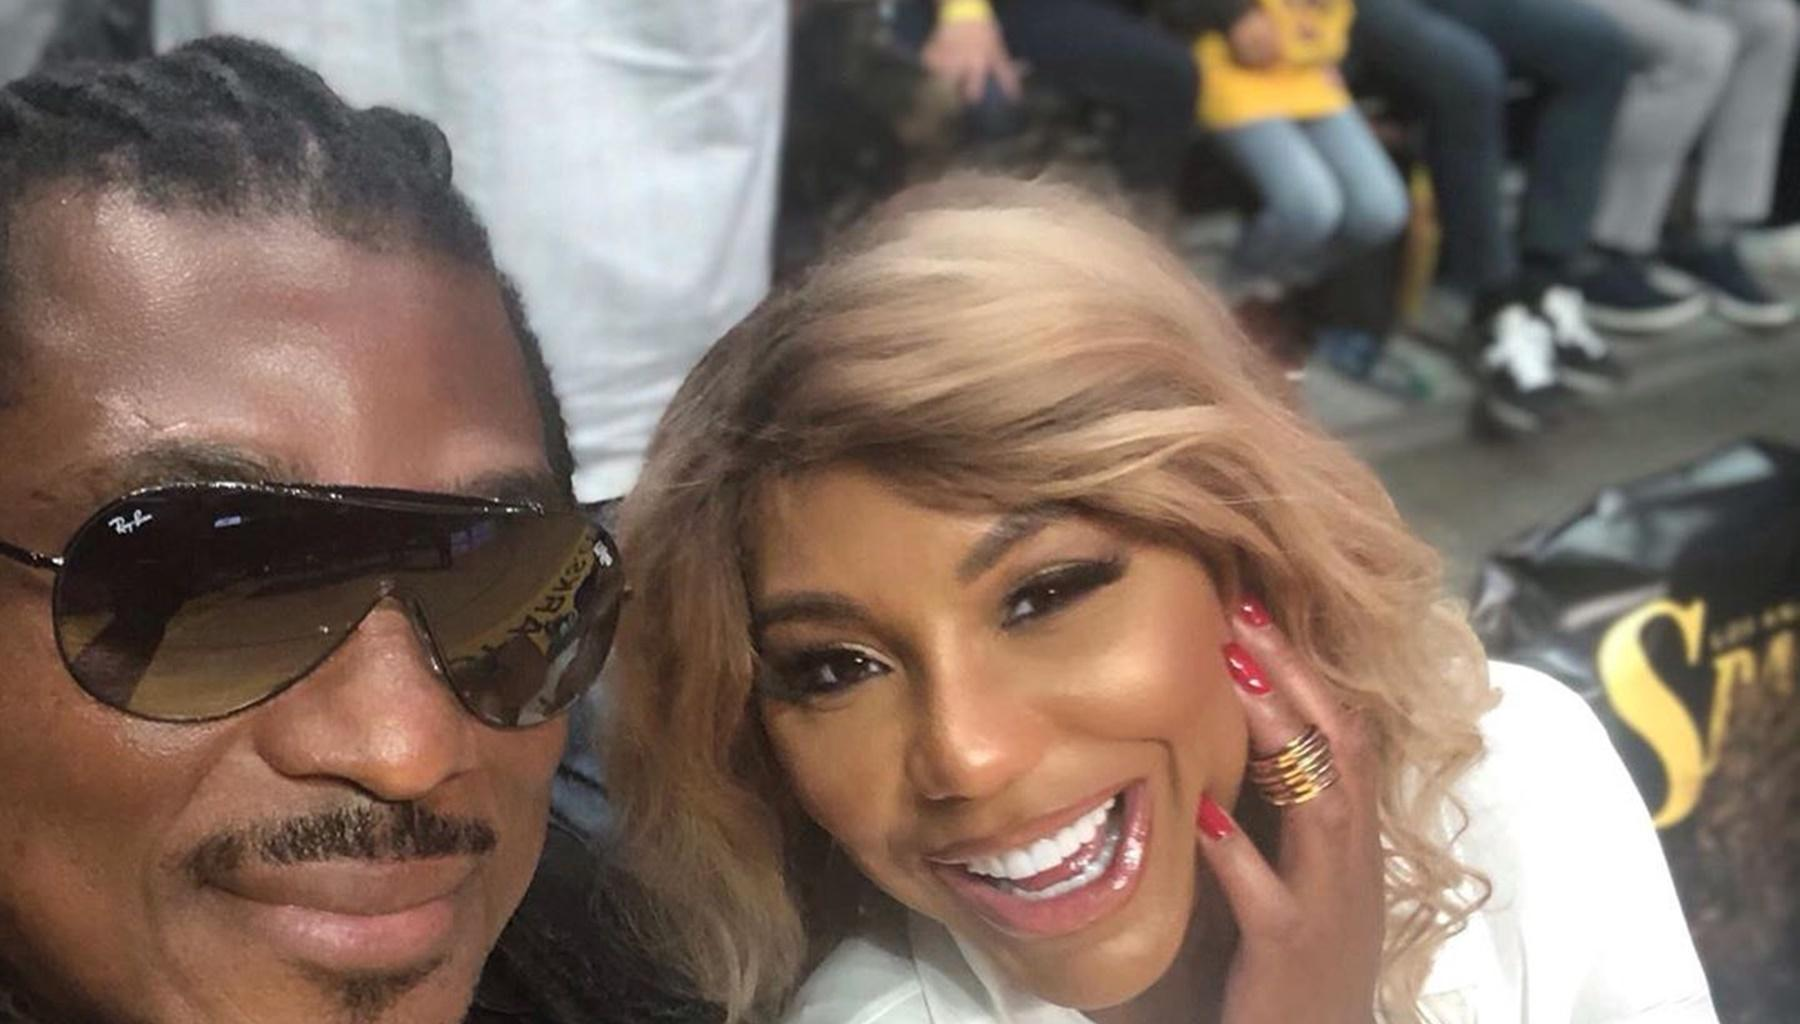 Tamar Braxton And David Adefeso's Latest Video Was Filmed In The Back Of A Car -- Will It Lead To Baby Number 2?